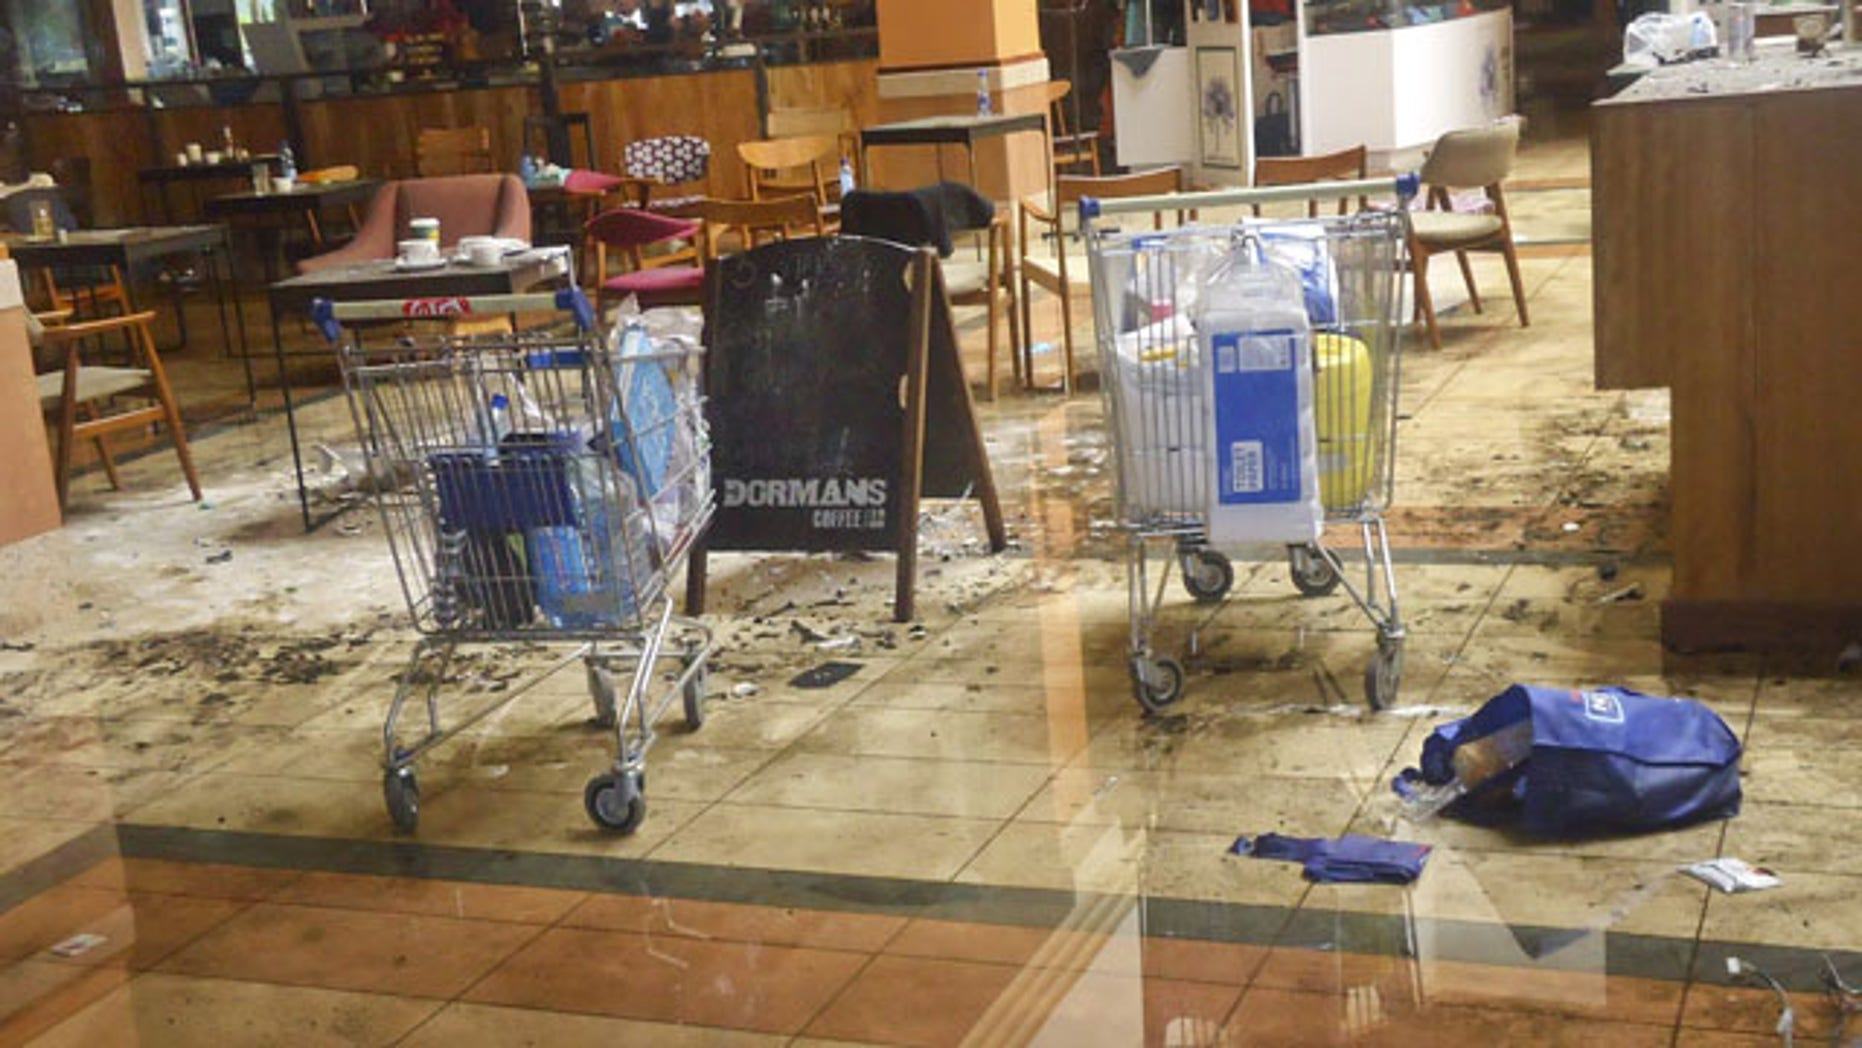 September 30, 2013: This photo taken Friday, Sept. 27, 2013 shows the scene at the Dormans coffee shop on the ground floor of the Westgate Mall in Nairobi, Kenya. (AP Photo)